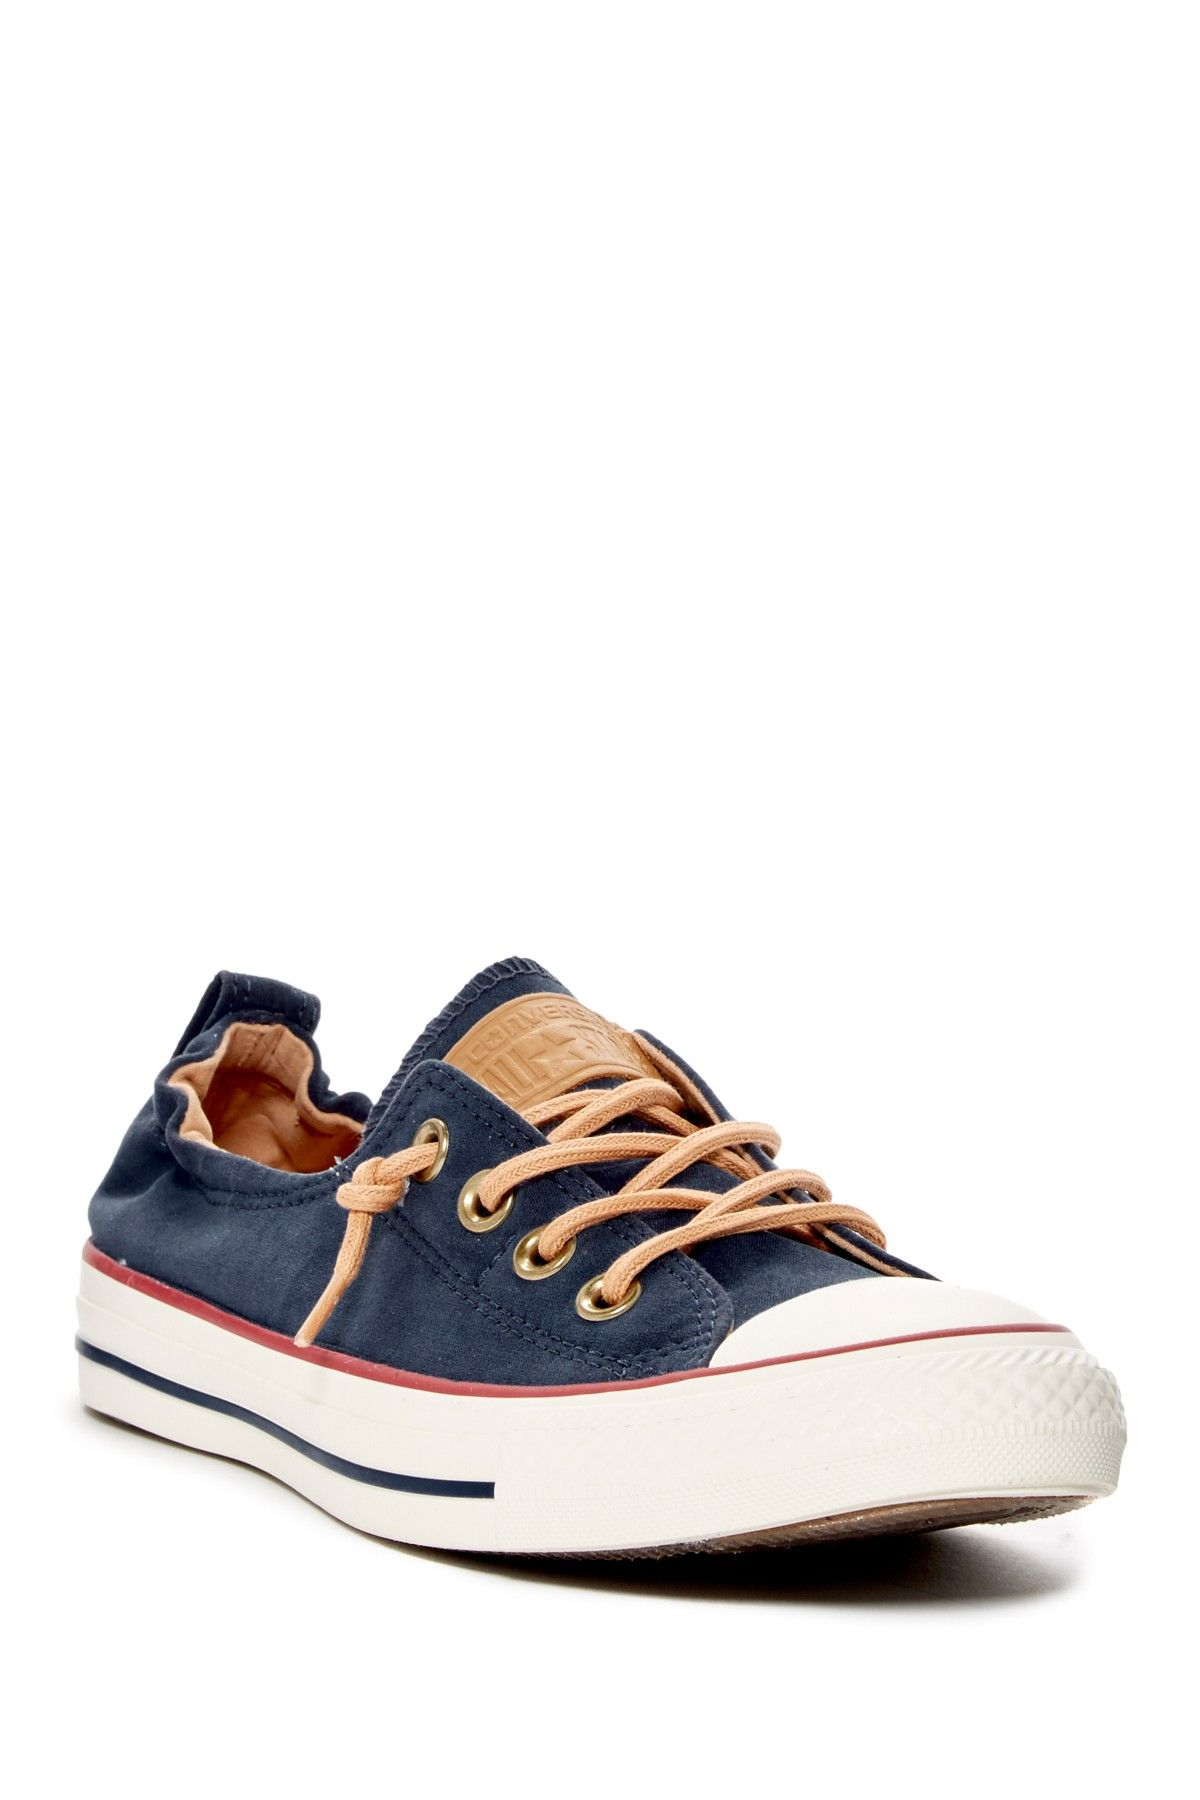 Converse Chuck Taylor All Star Shoreline - Slip Peached Canvas wsCHFmj